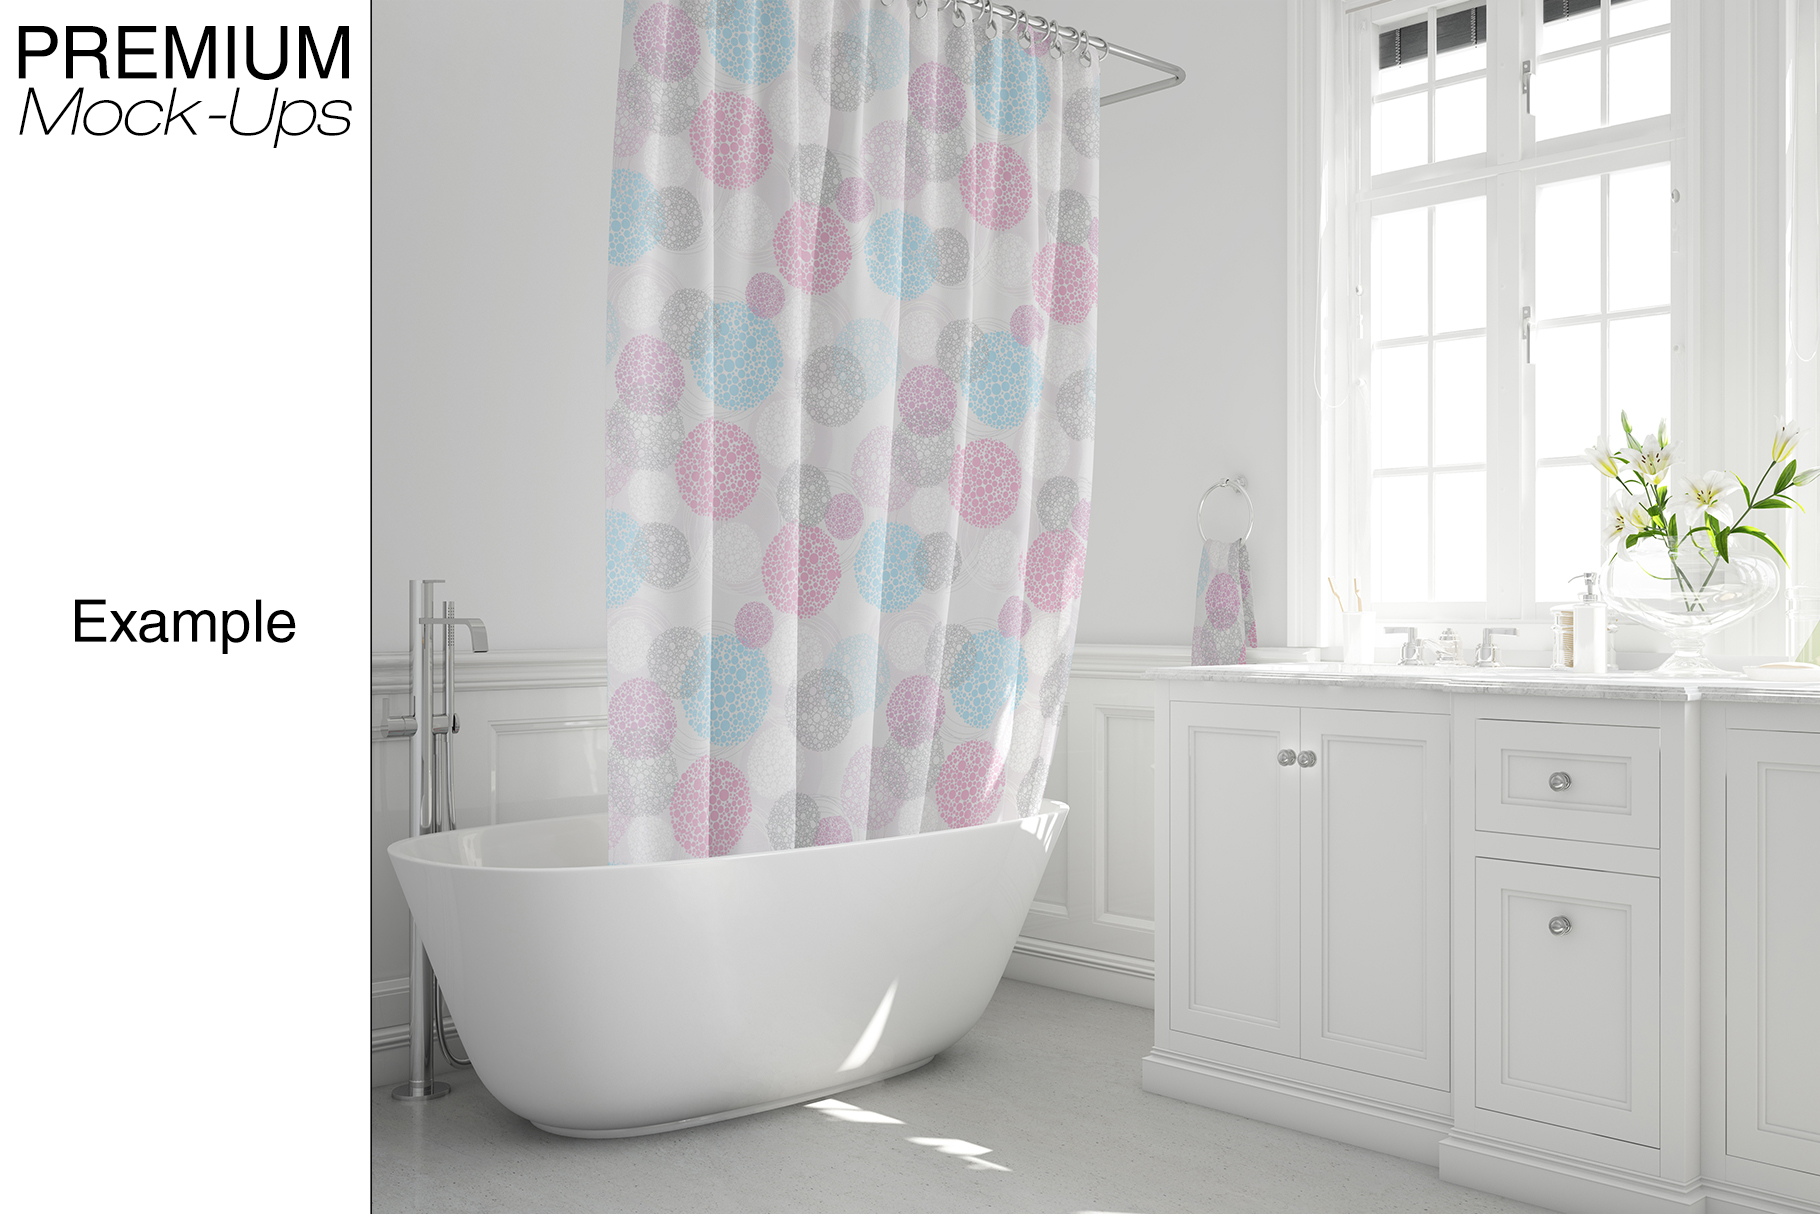 Bath Curtain Mockup Pack example image 11